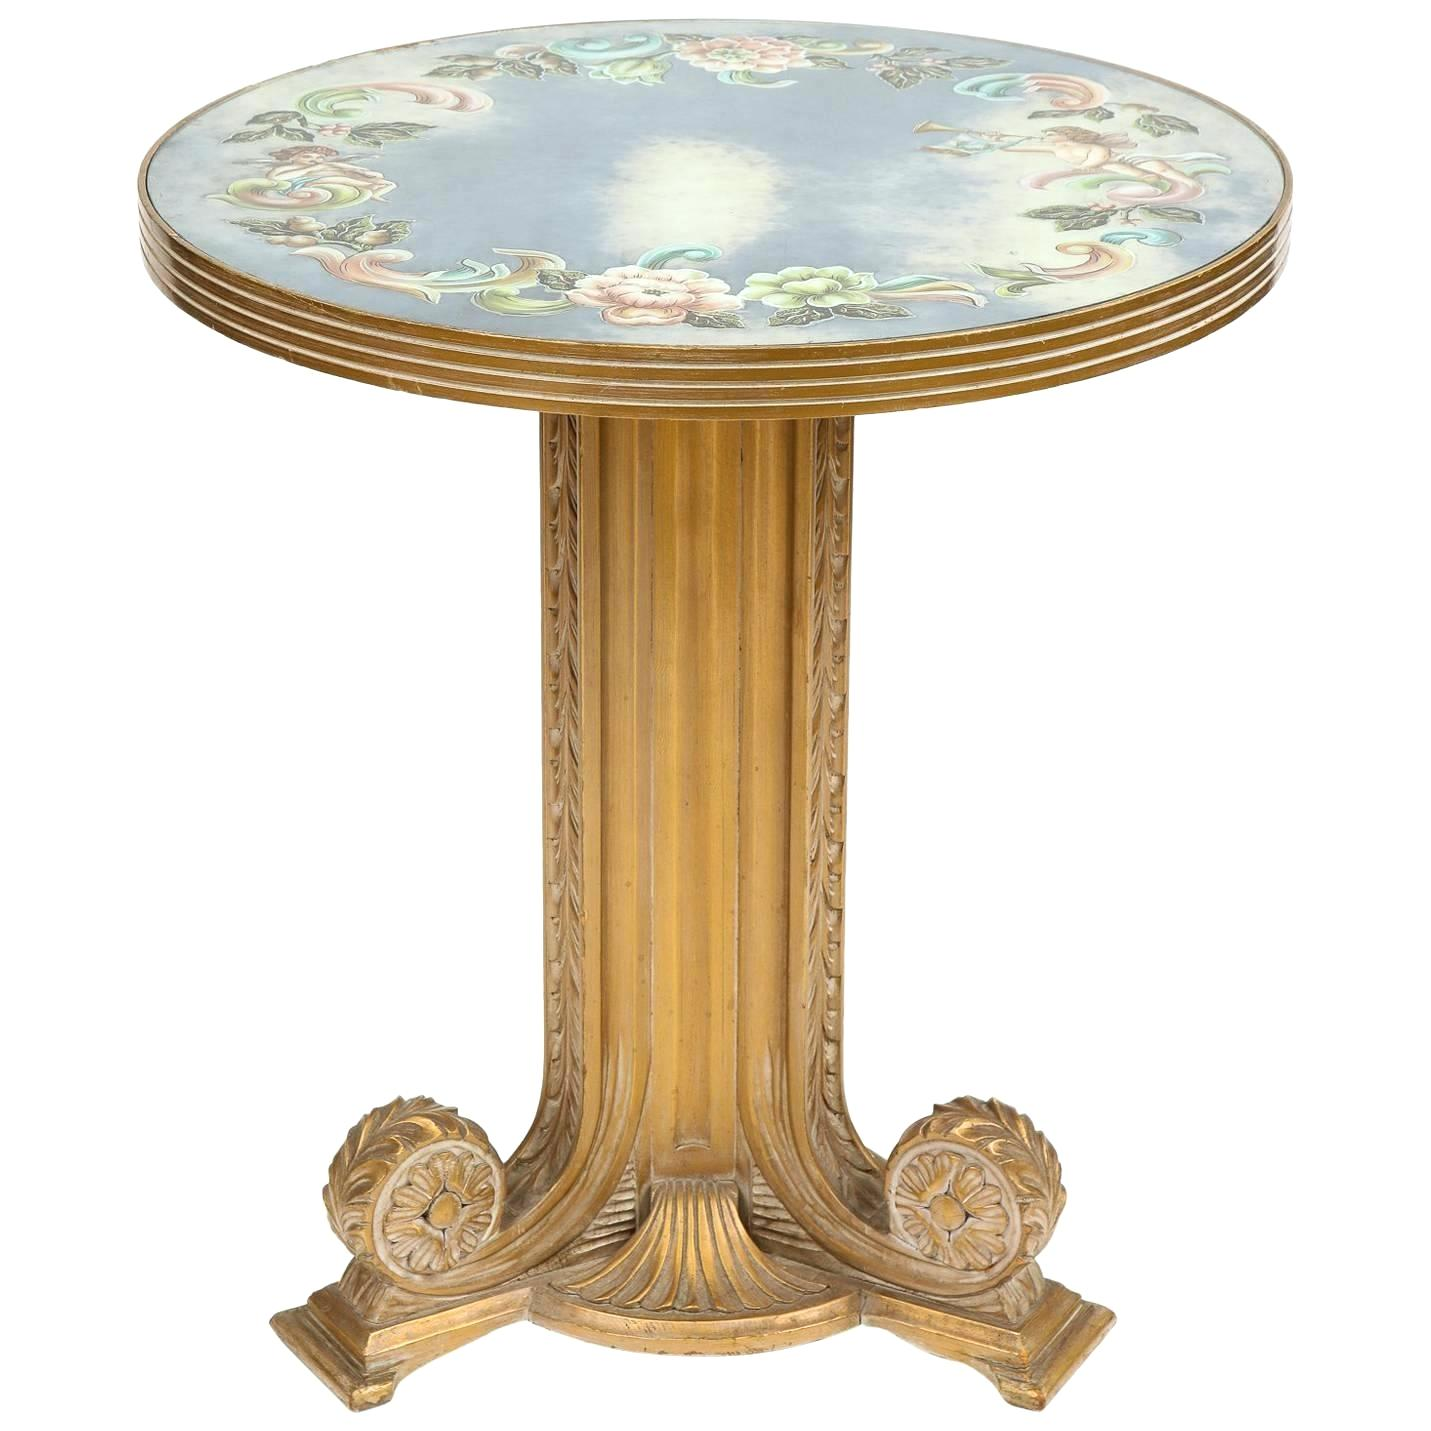 antique accent table brass handcrafted vintage centre wood tables gold desk lamp tall chairs cordless led lights martha stewart outdoor furniture half grey cabinet target mirrored